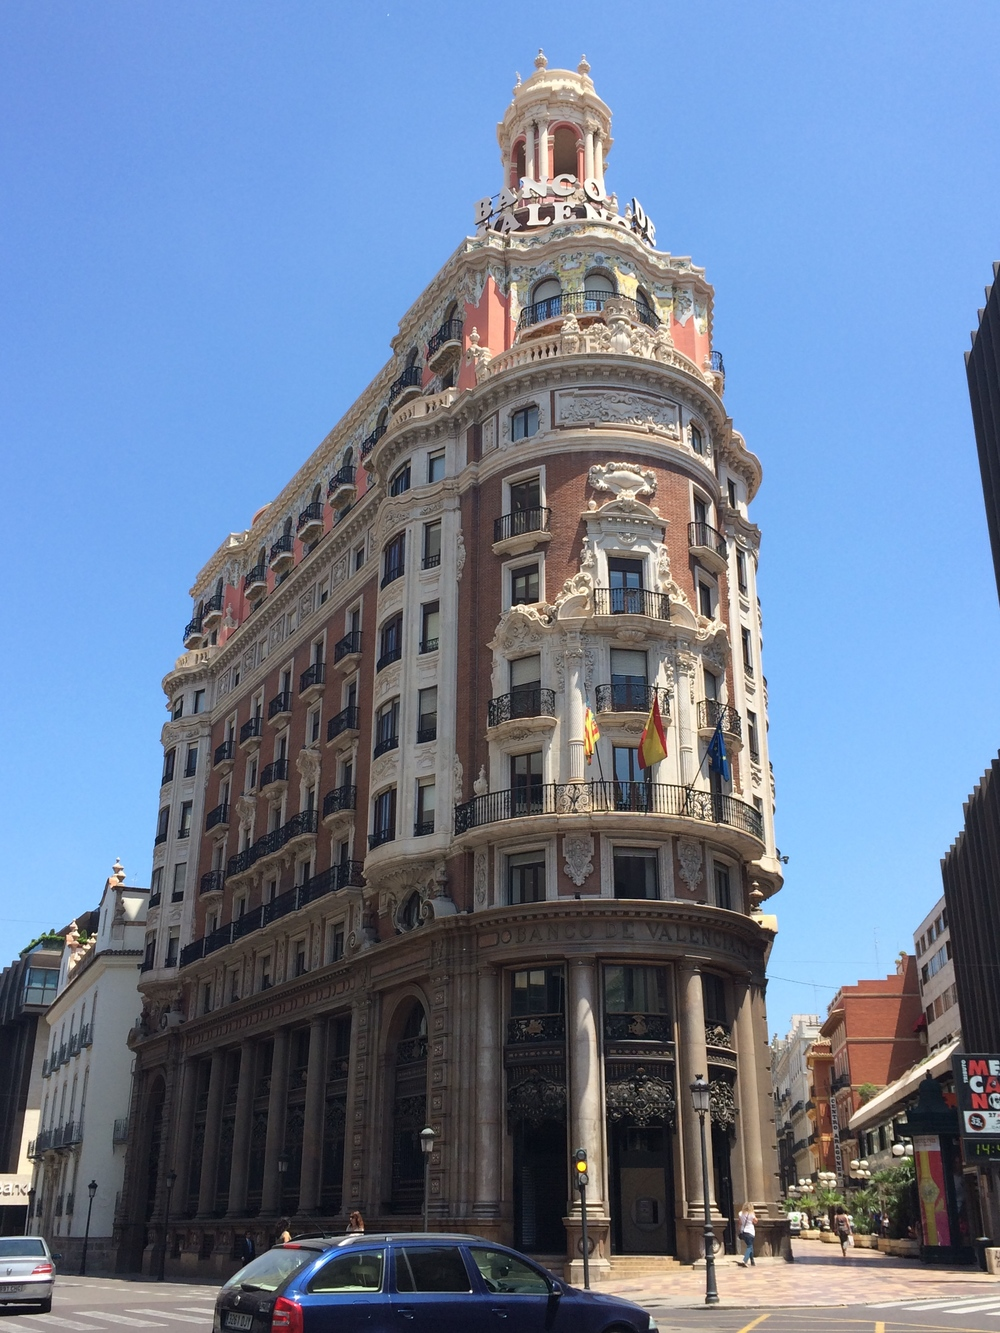 The best way to enjoy Valencia is to simply wander around aimlessly.